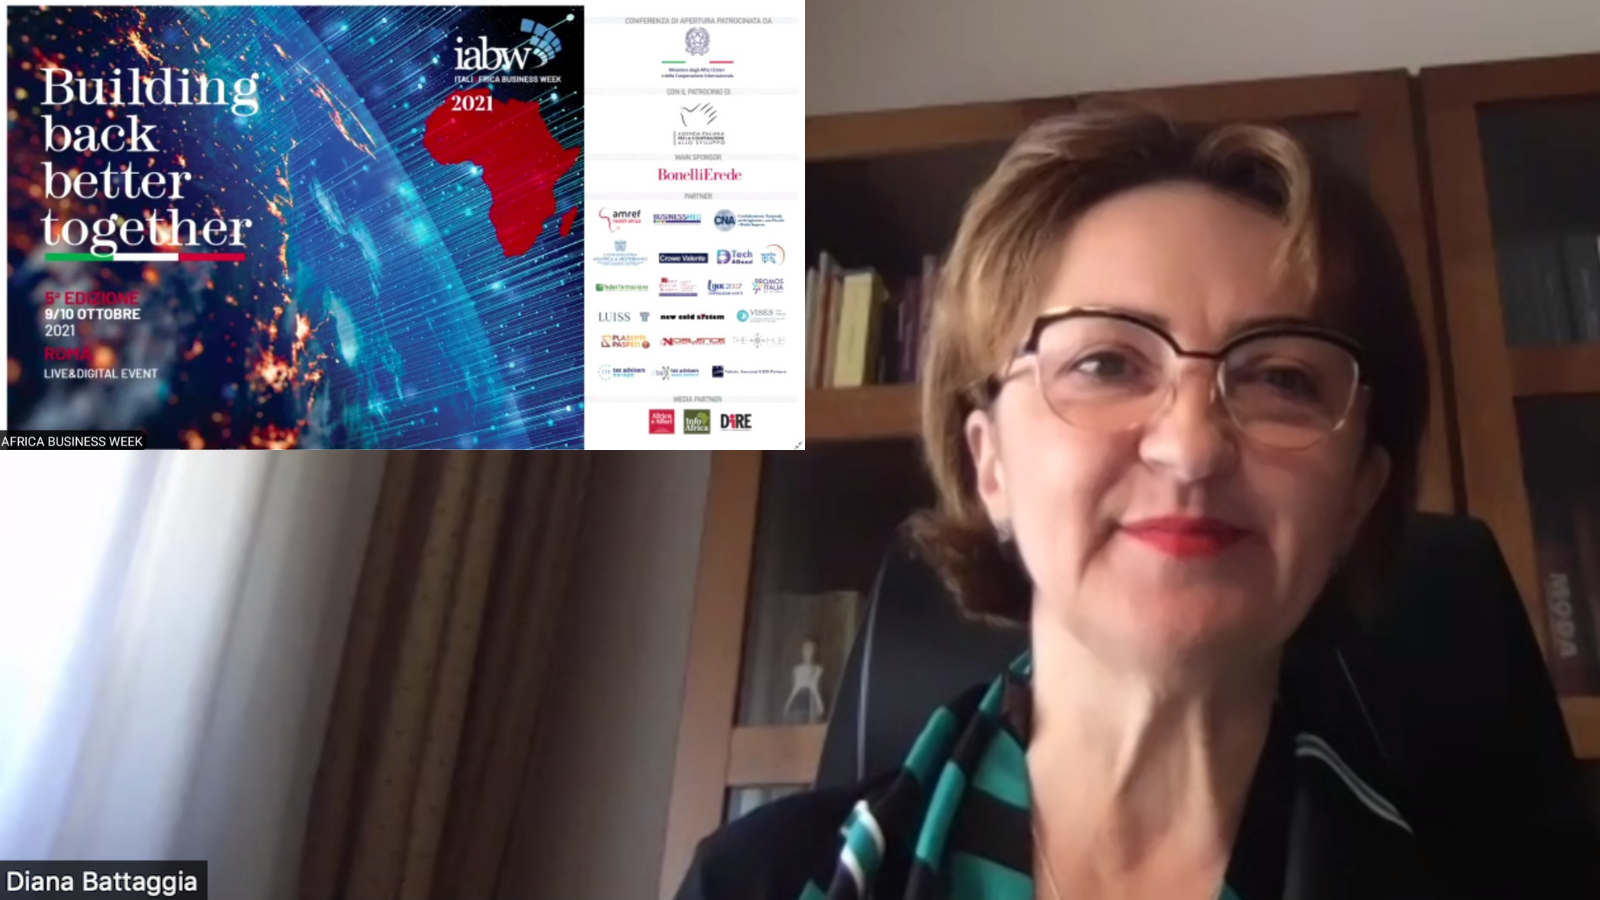 UNIDO ITPO Italy Head Ms. Diana Battaggia at the Italia Africa Business Week 2021